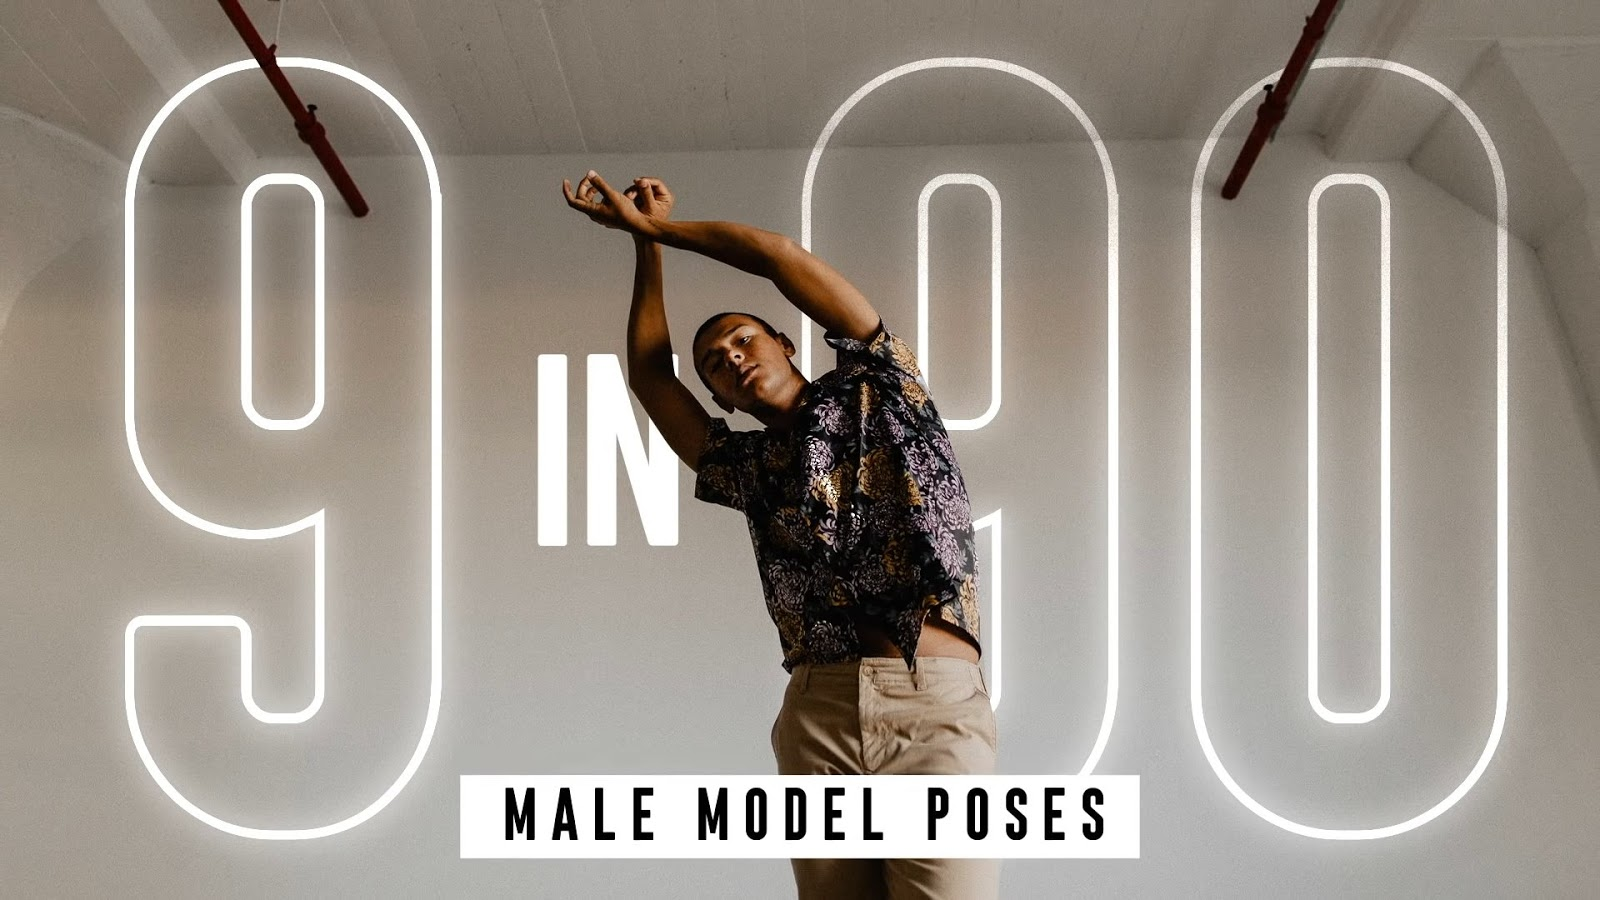 9 Unique Male Model Poses in 90 Seconds